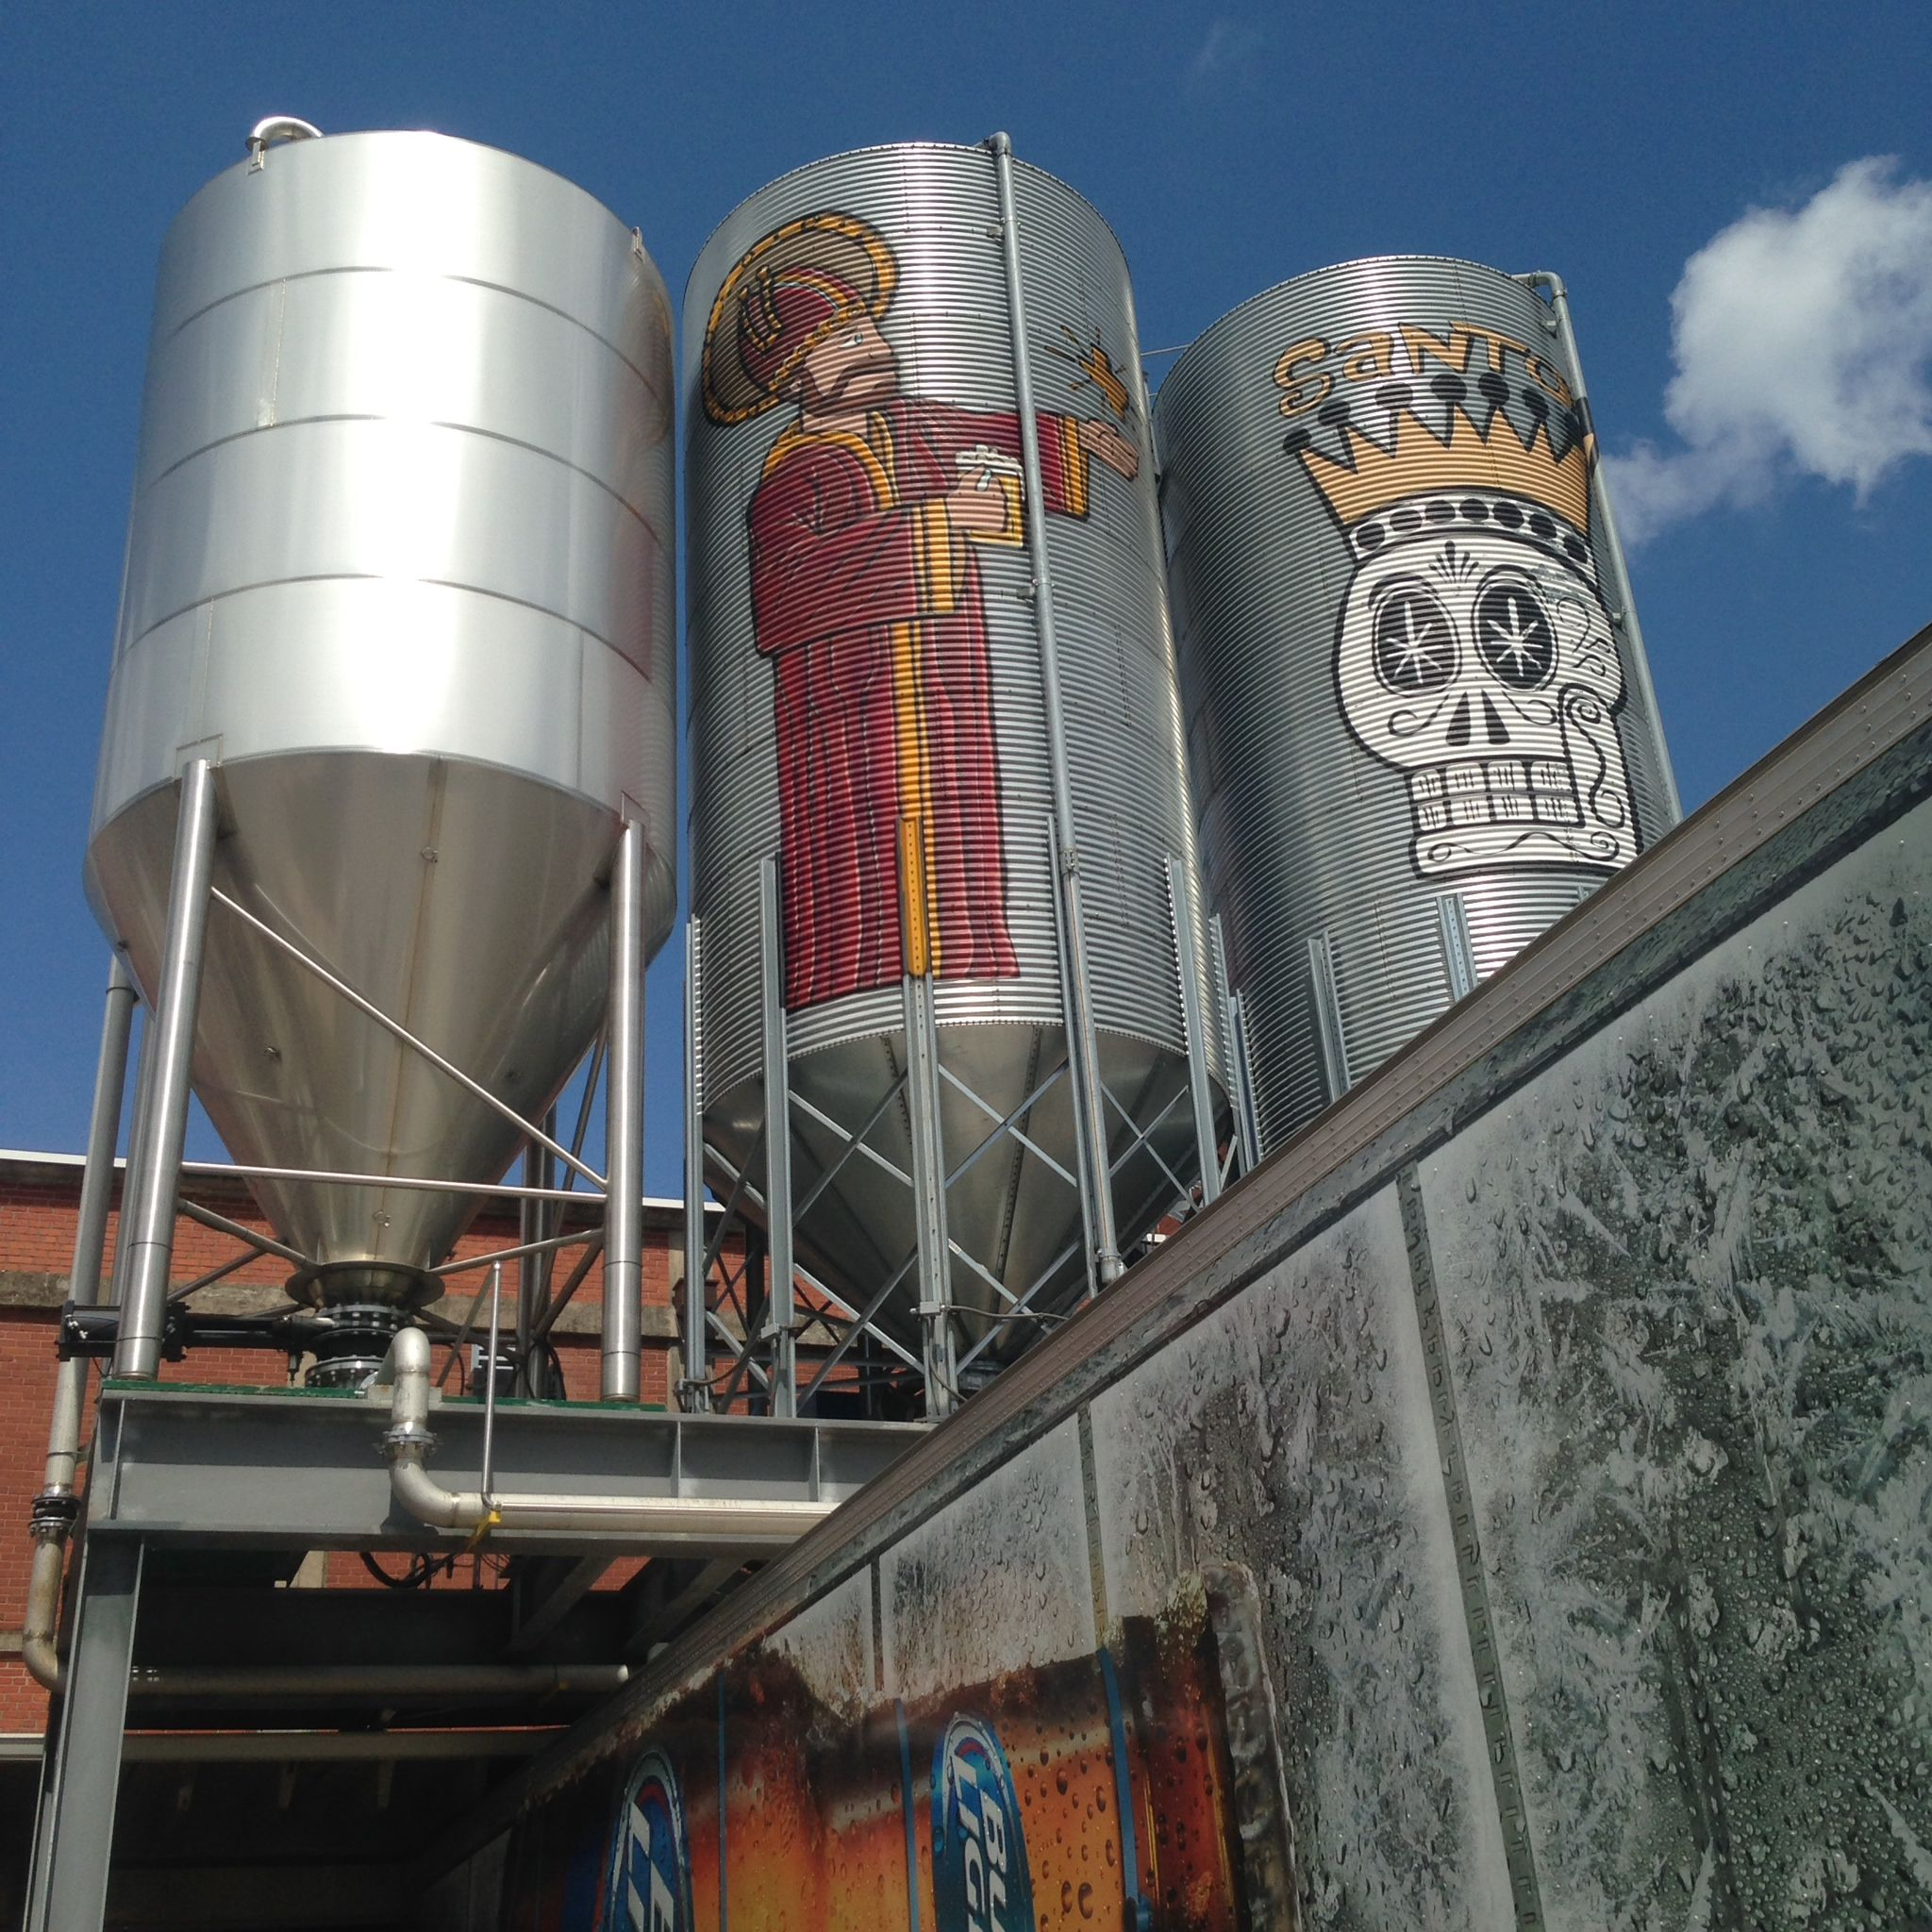 micro breweries with grain silos Google Search